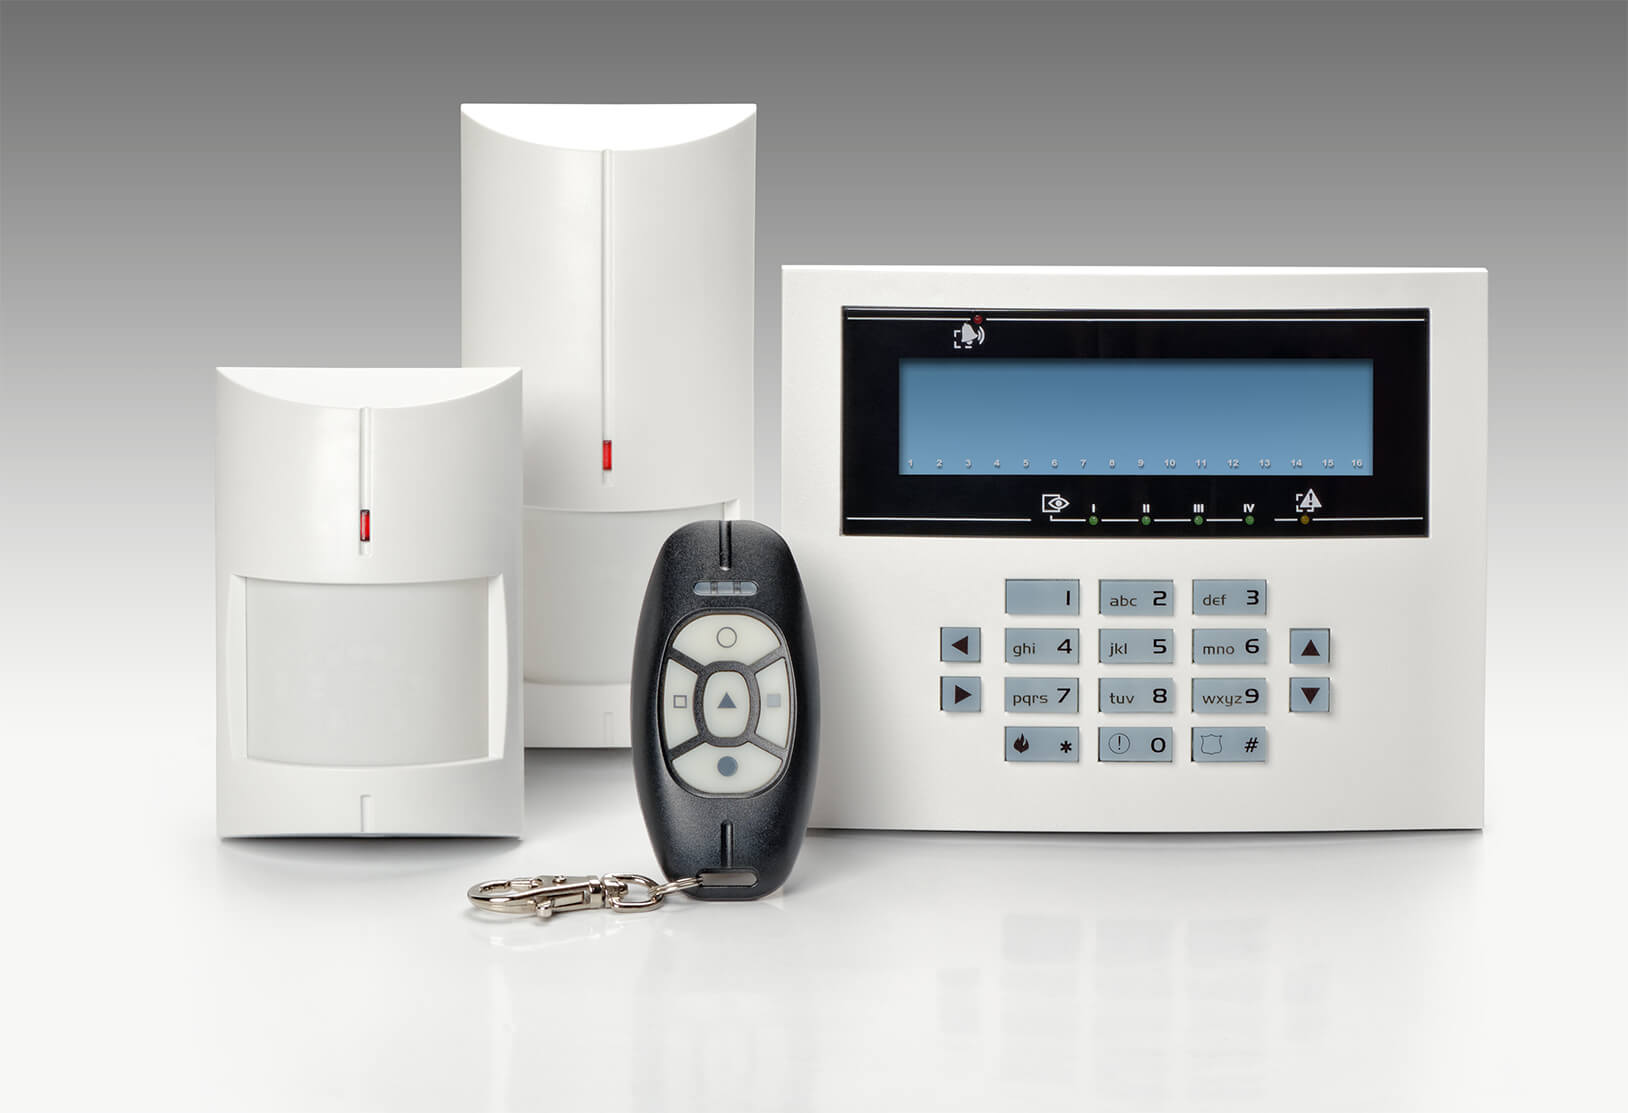 Commercial Burglar Alarms For Business in Borough SE1  - Local Borough SE1 burglar alarm company.Call 02078872244 - Dedicated to Safety & Security. Companies, shops and homes ..